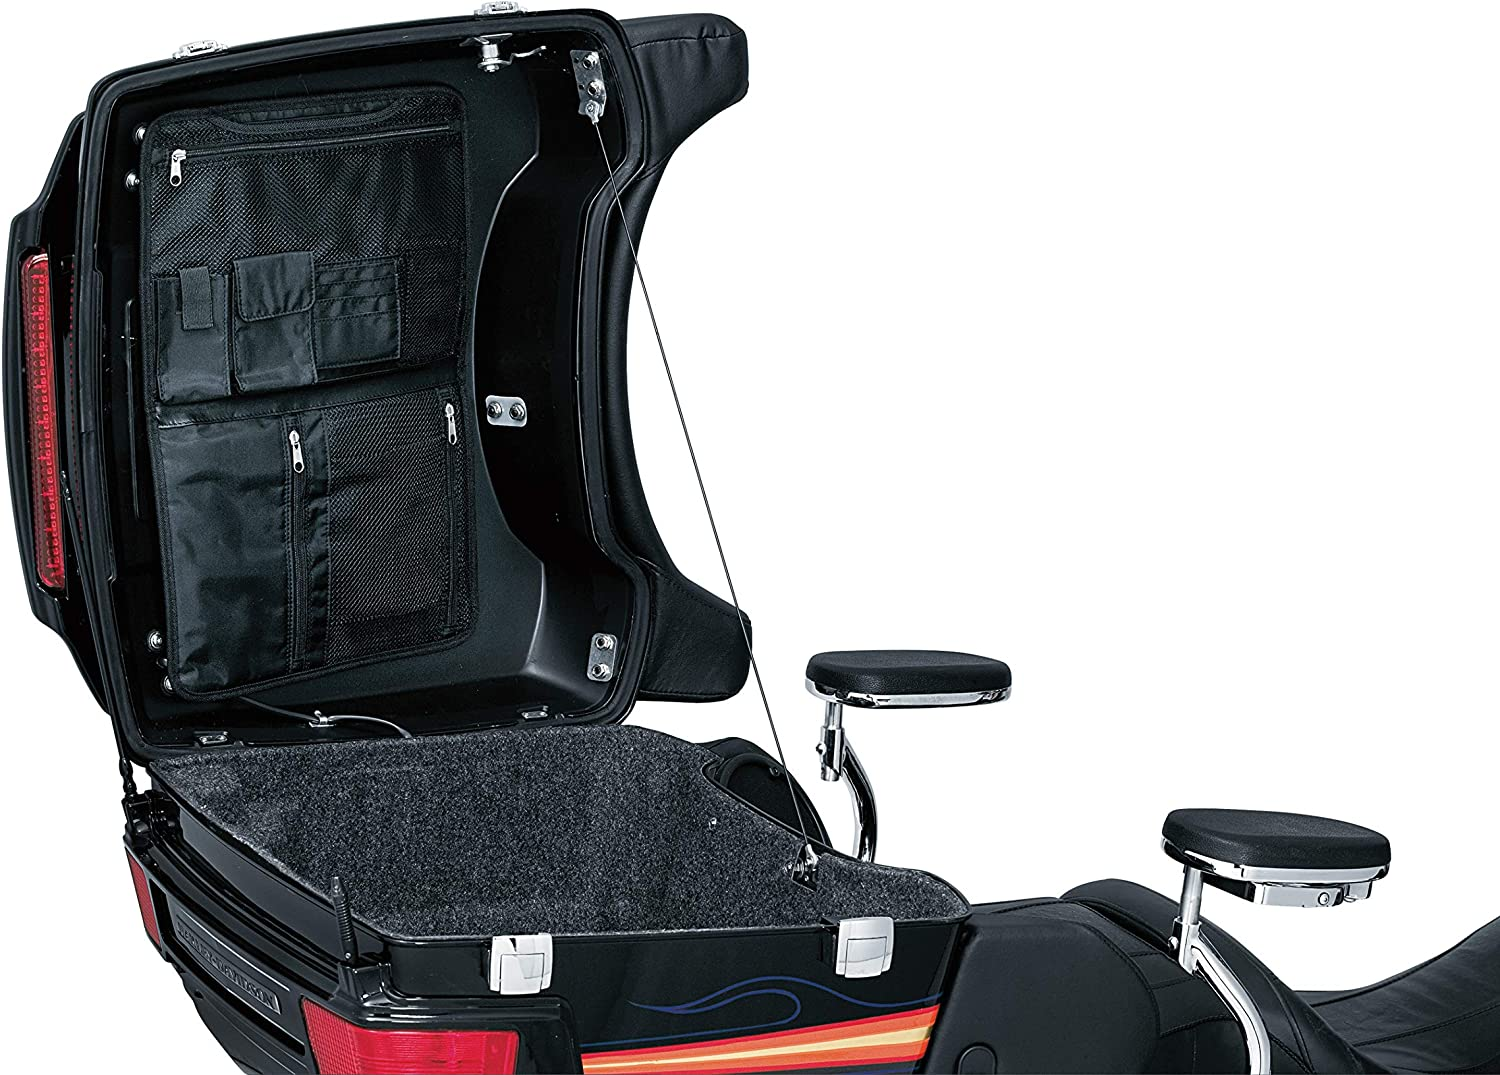 Black Ultra Kuryakyn 4134 Motorcycle Travel Luggage: Removable Trunk Lid Organizer Bag with Carrying Handles for Harley-Davidson Motorcycles with: King Chopped Tour-Paks